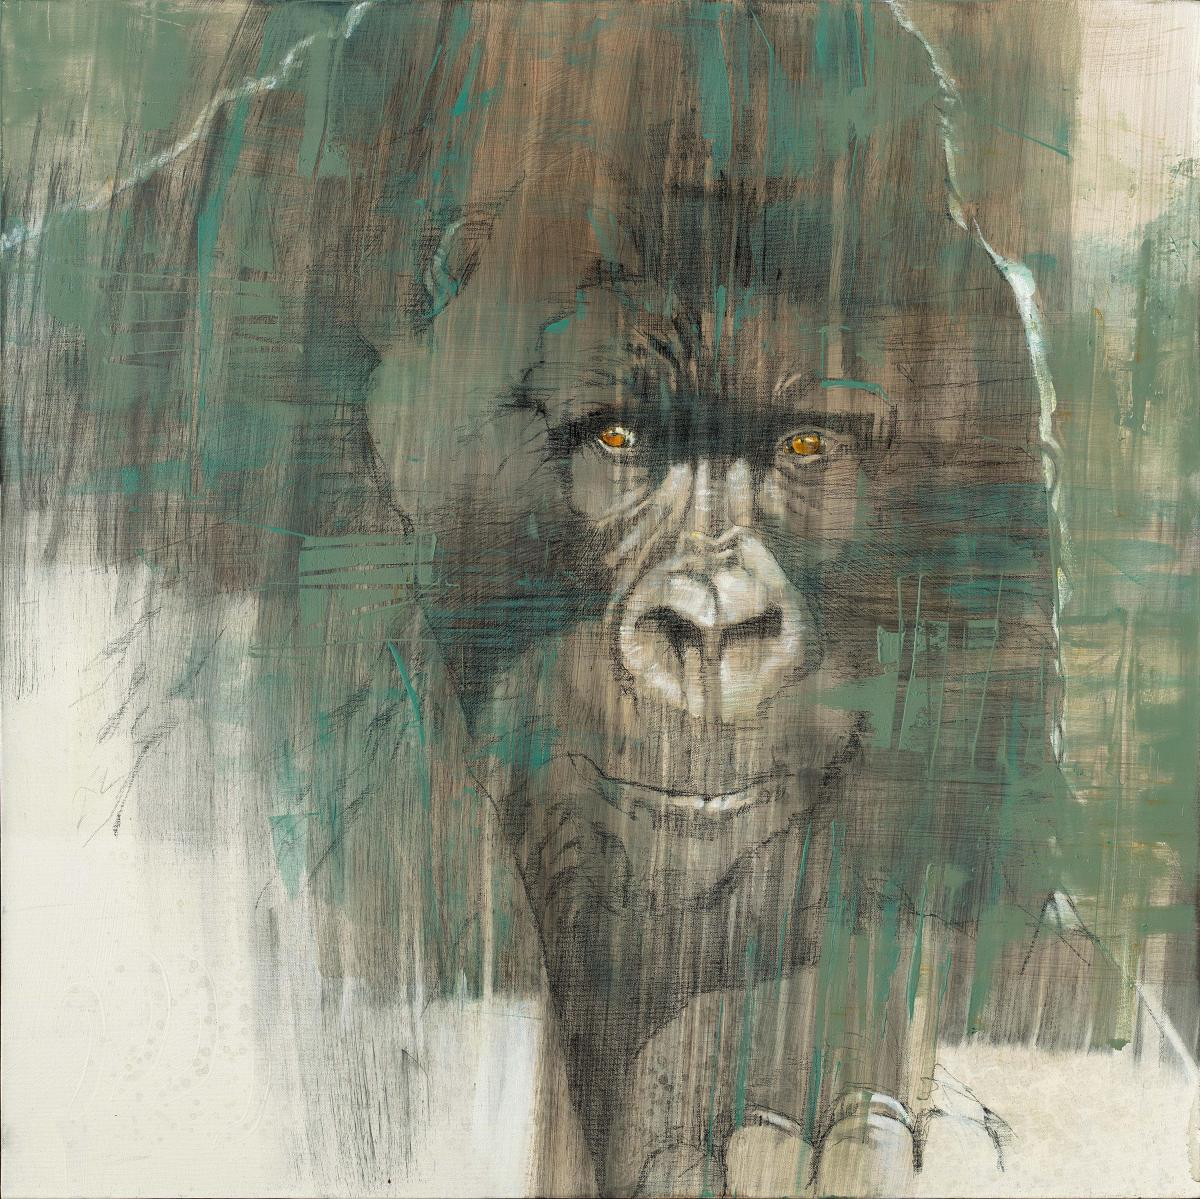 Watcher of Virunga | Wallhanging by Anne London | Artists for Conservation 2020